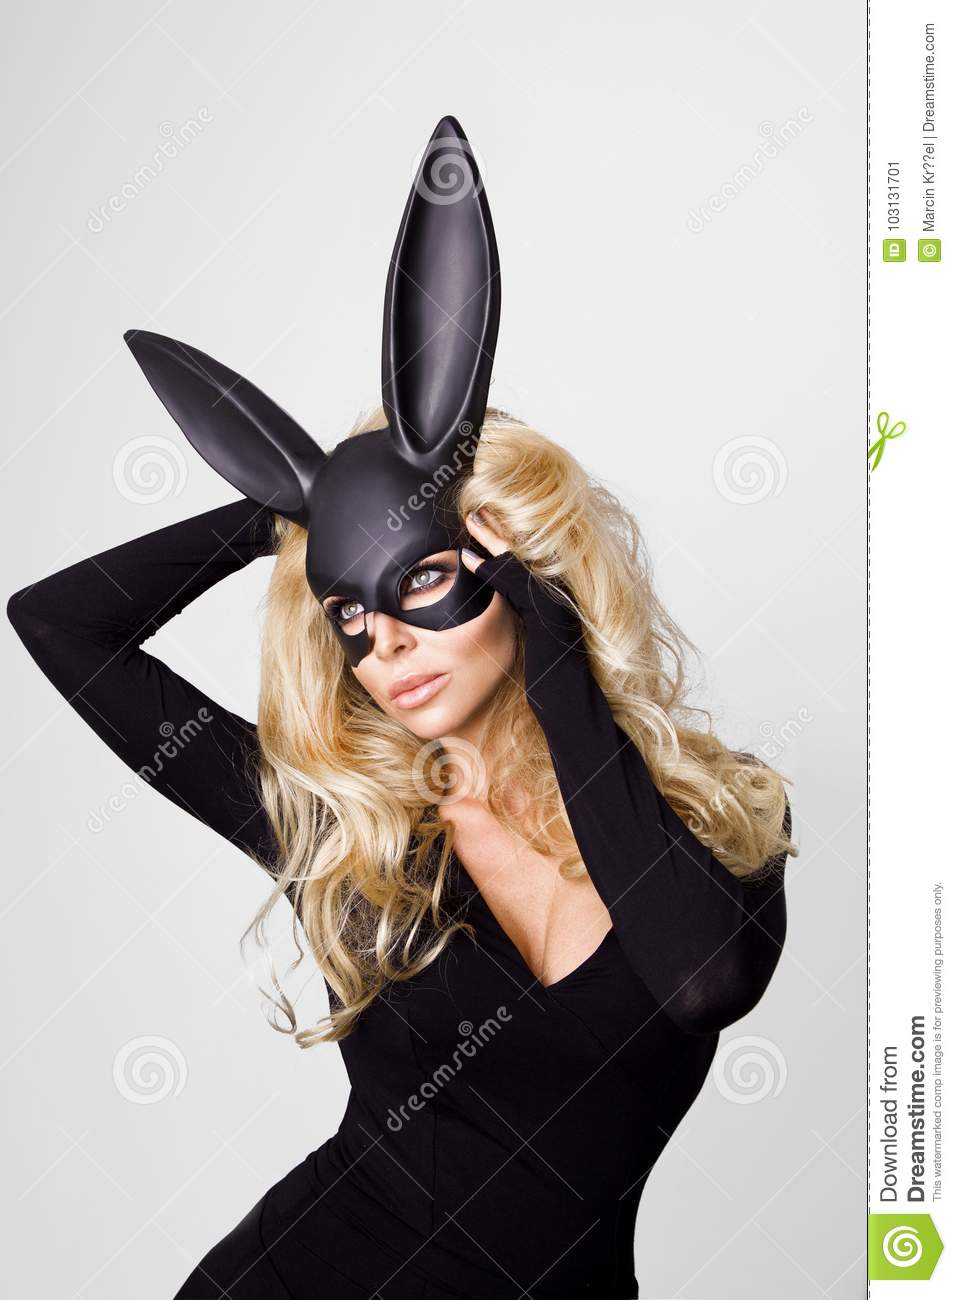 woman with large breasts wearing a black mask Easter bunny standing on a white background